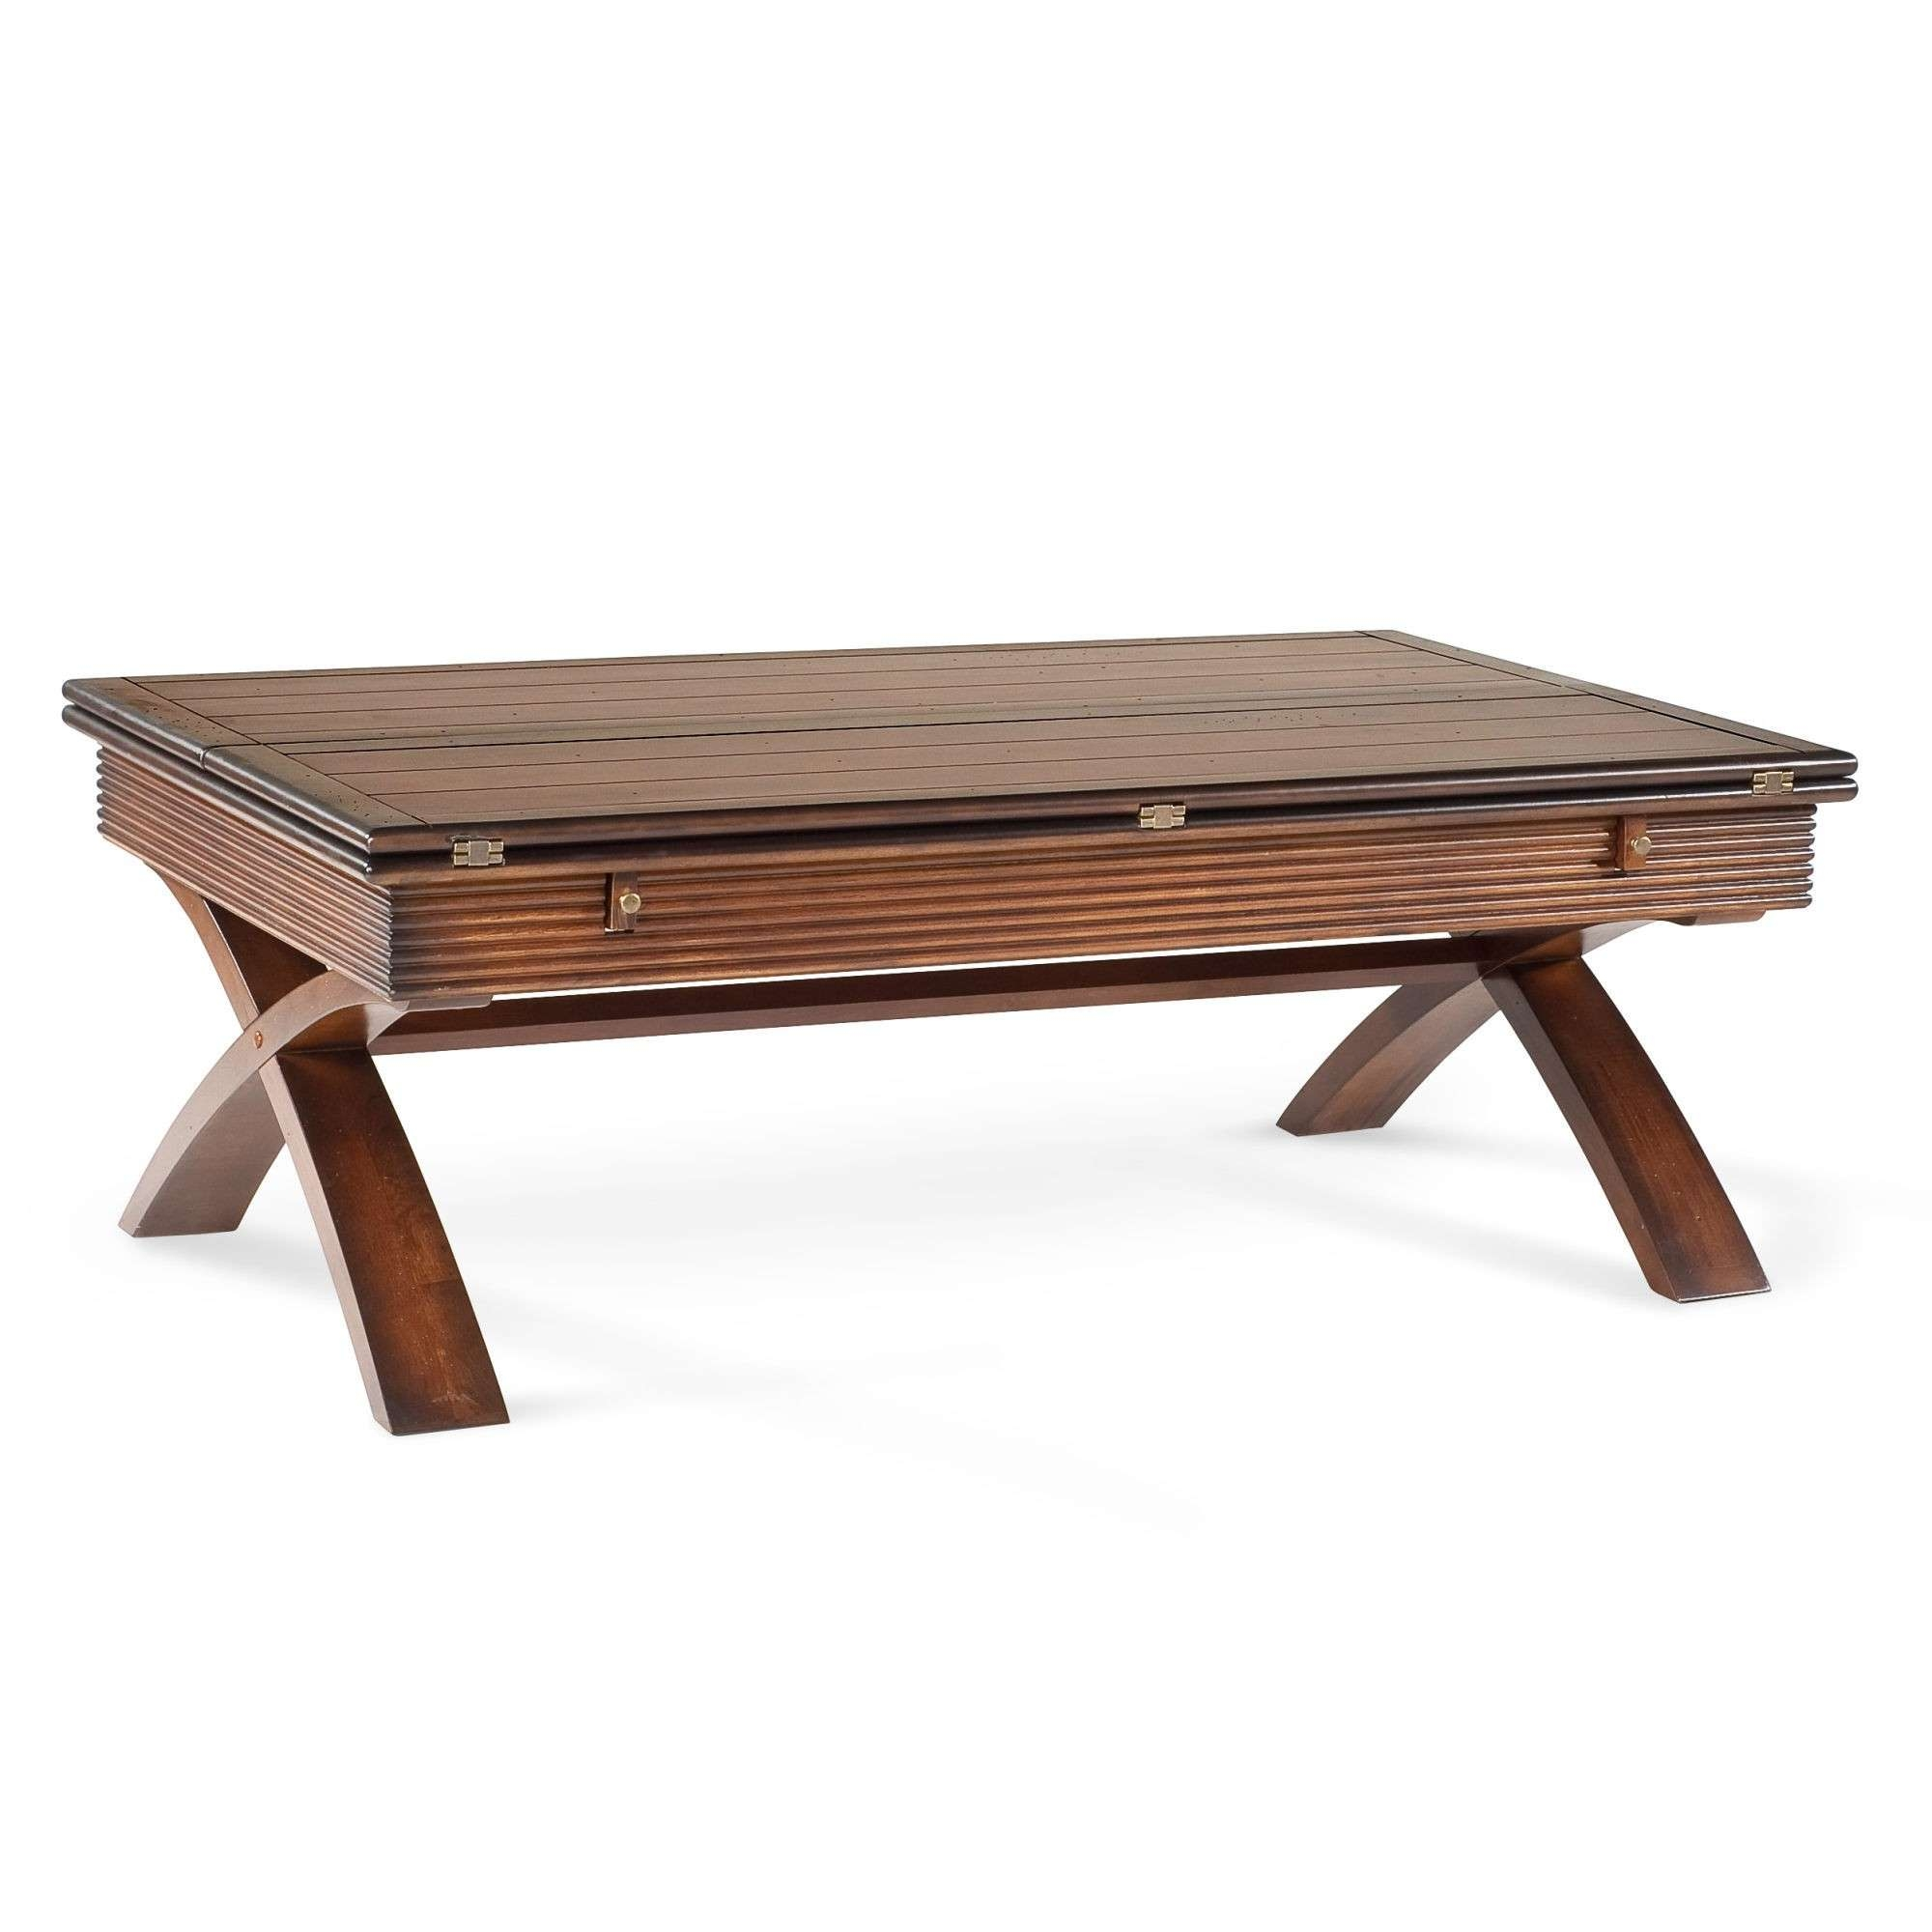 Preferred Flip Top Coffee Tables Throughout Coffee Tables : Magnussen Coffee Table Cottage Lane Lift Top (View 4 of 20)